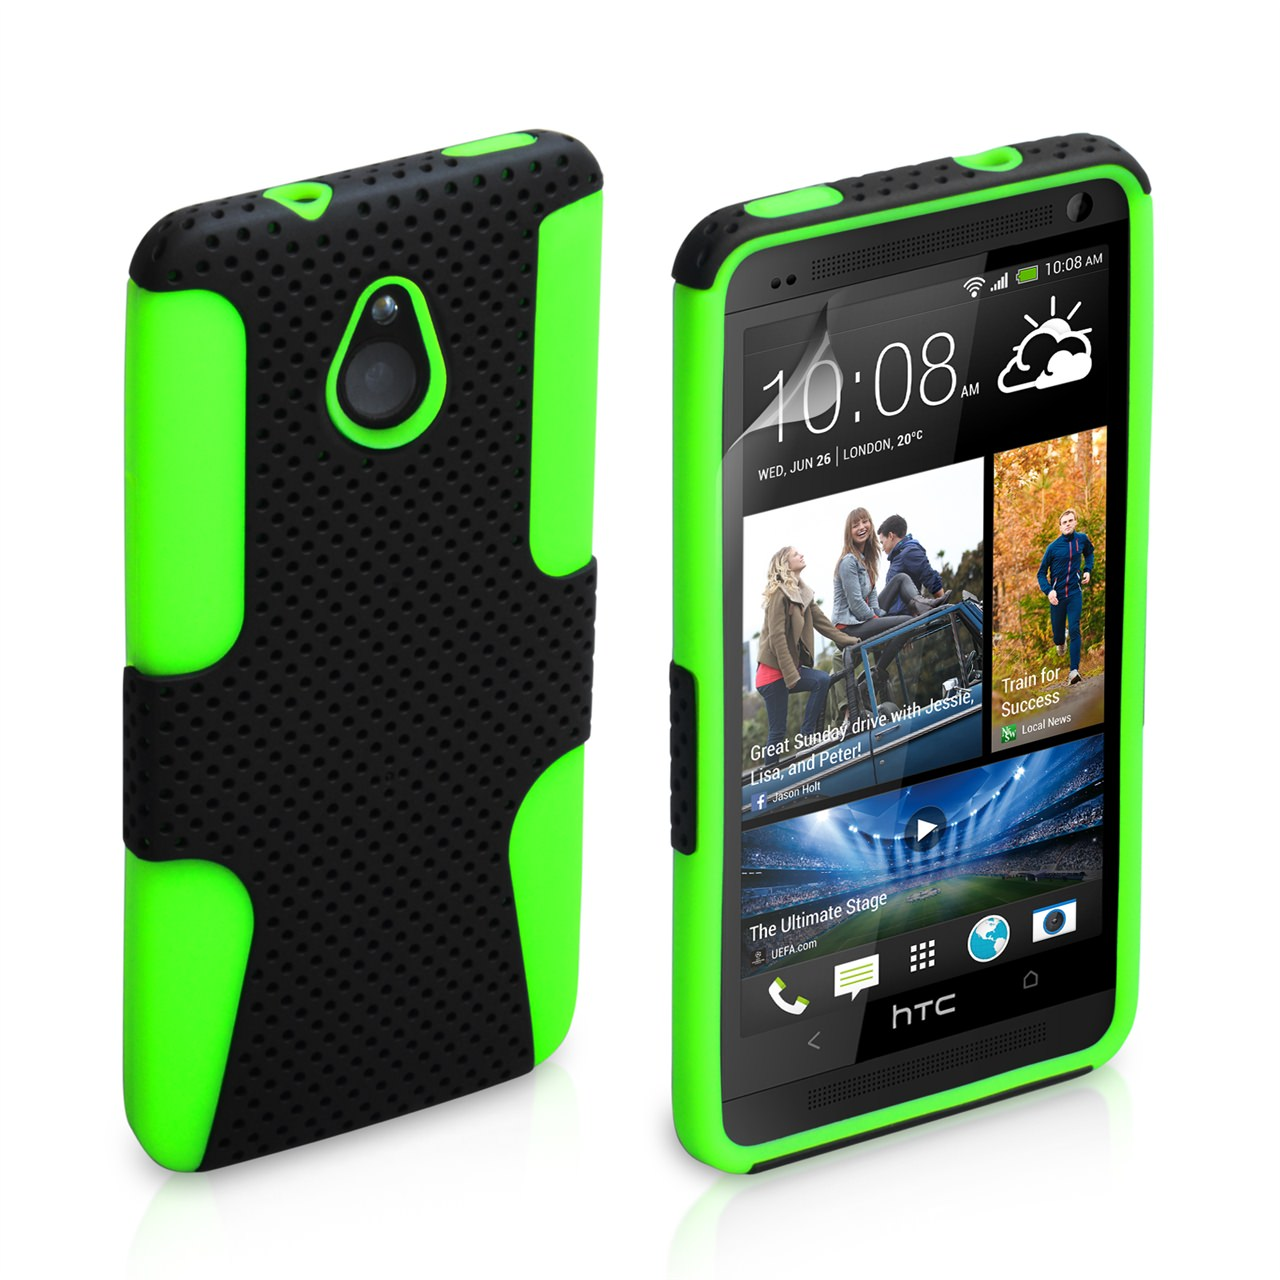 YouSave HTC ONE Mini Tough Mesh Combo Silicone Case - Green-Black